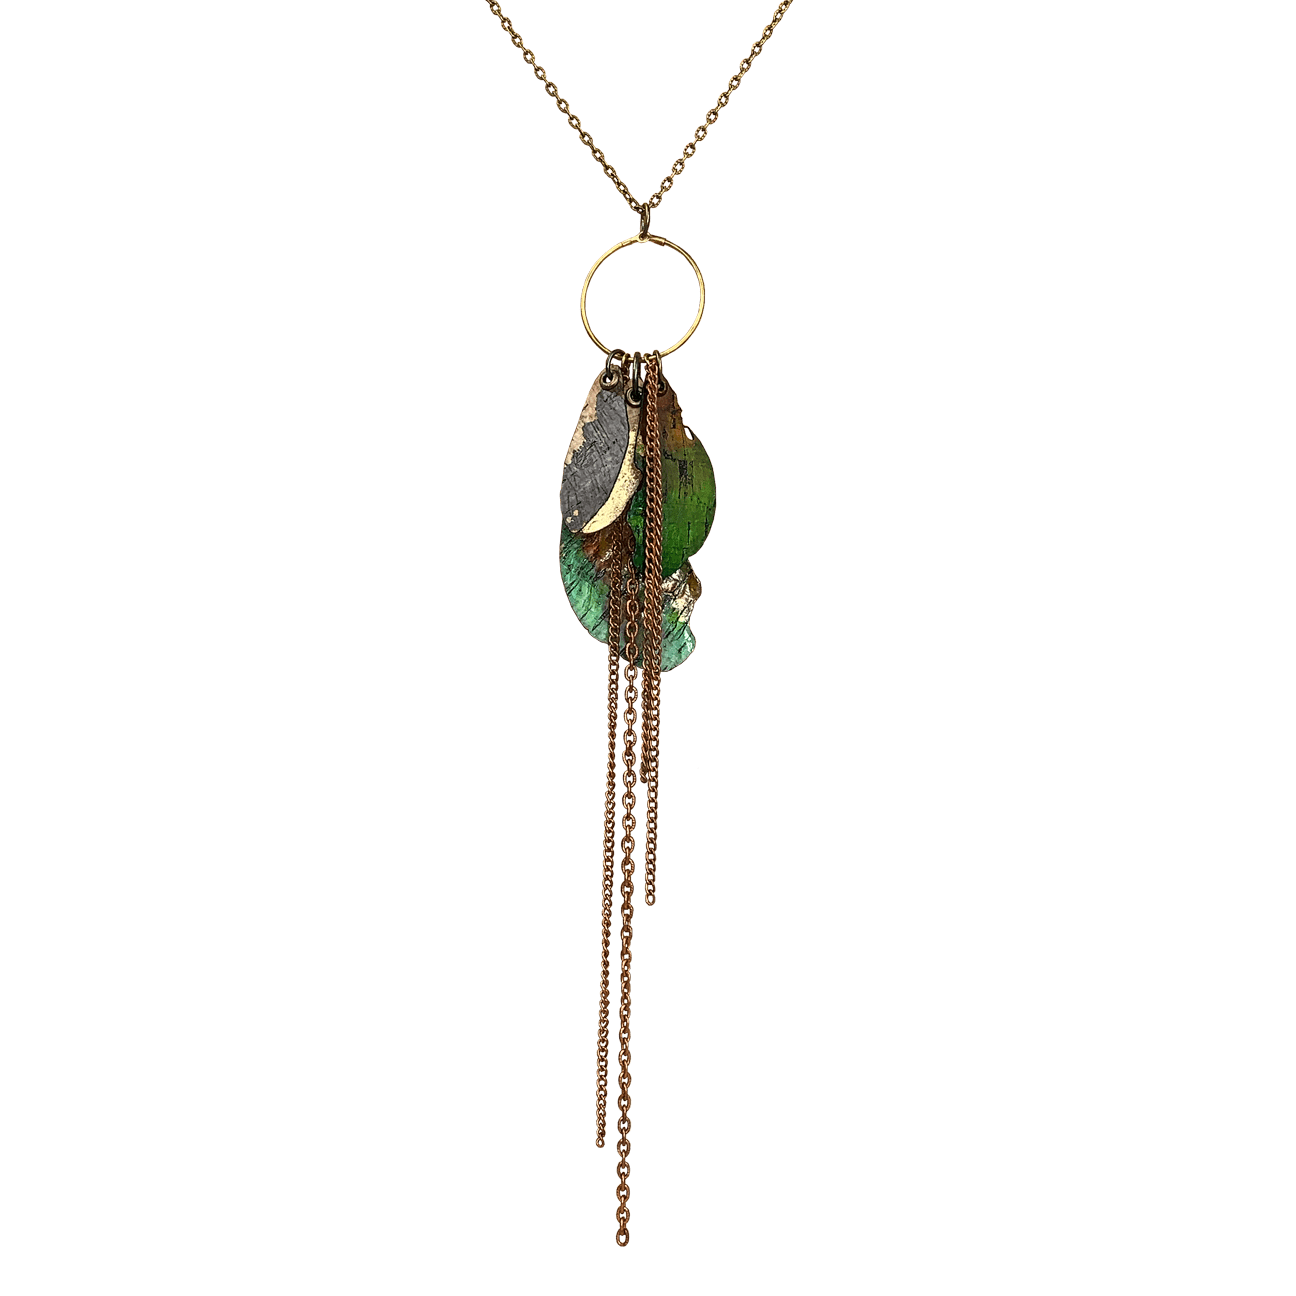 Spanish Moss Necklace